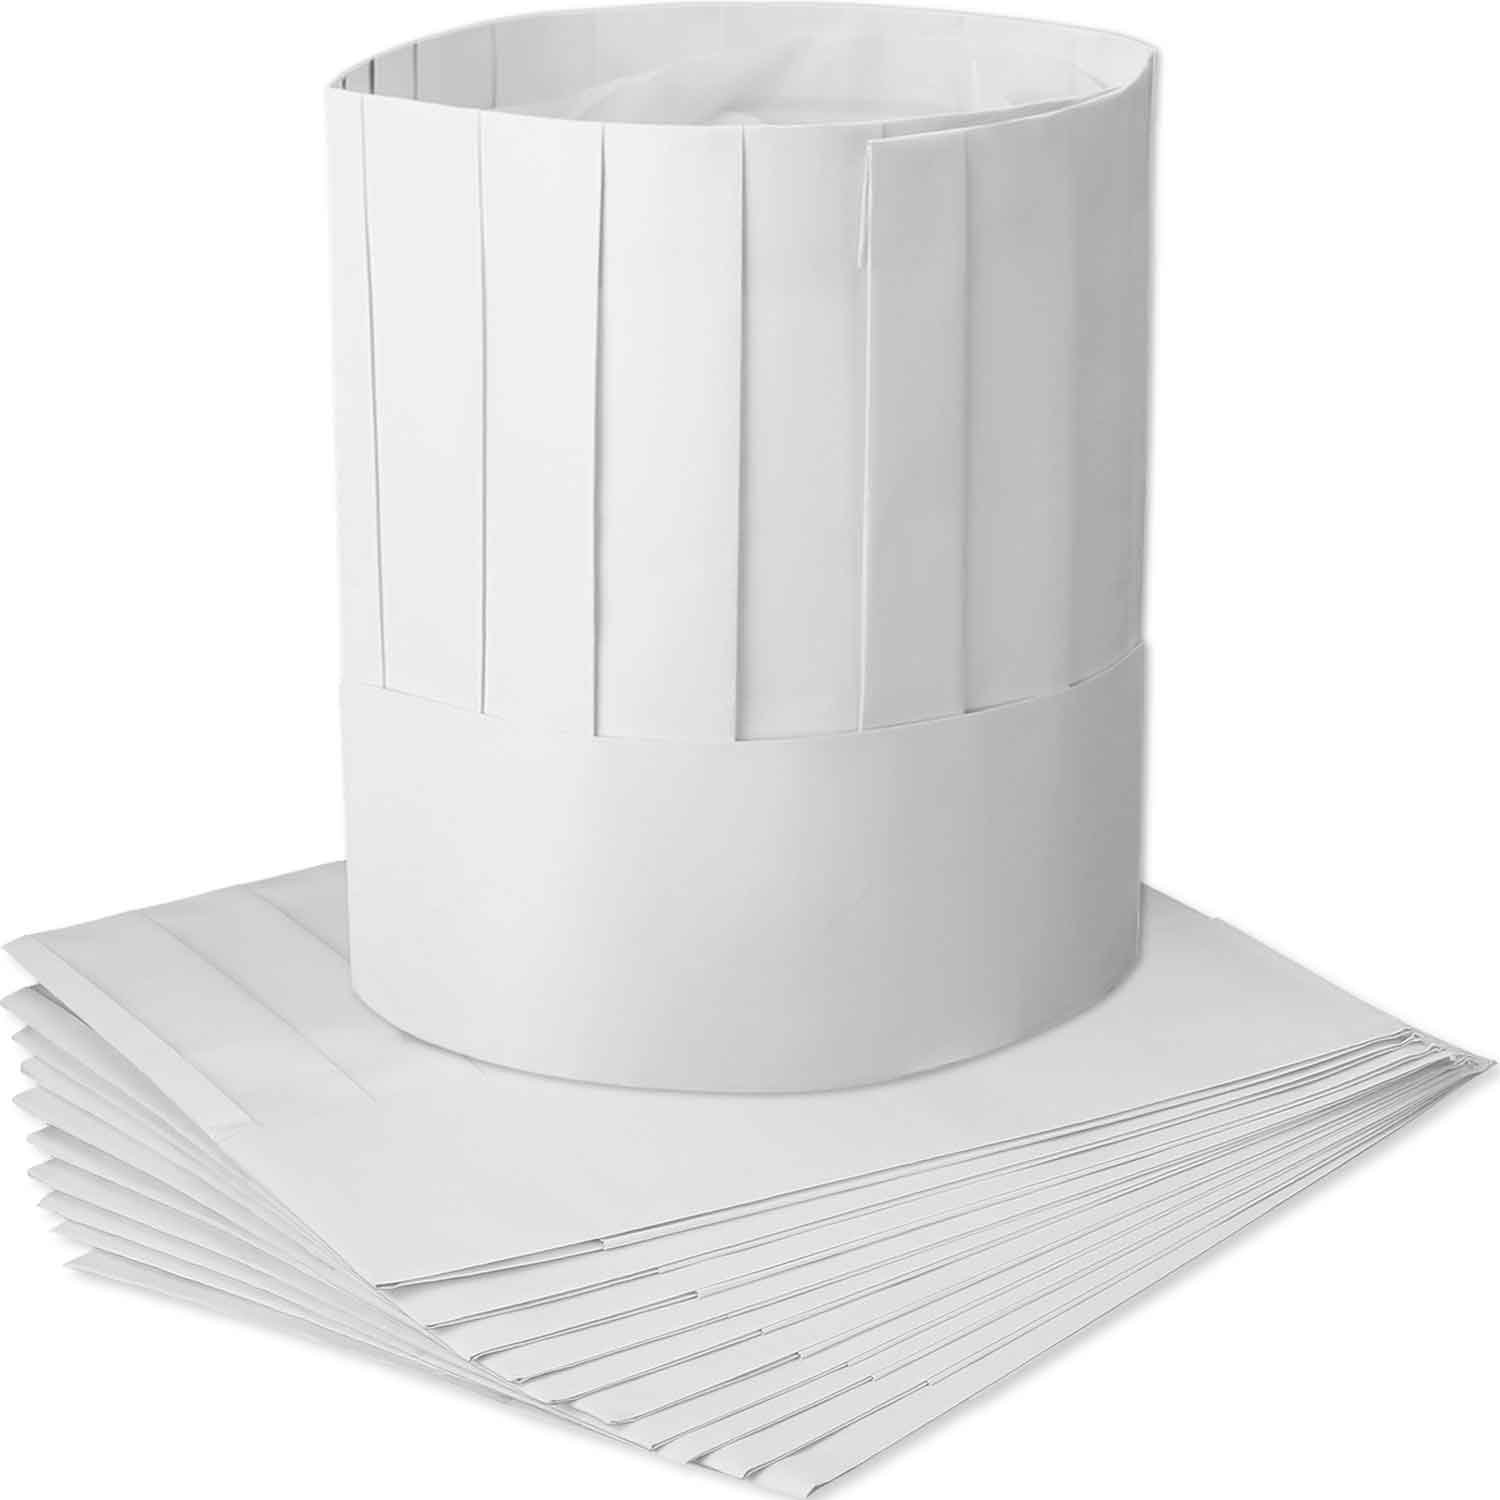 WILLBOND 12 Pack Disposable 9 Inch Paper Chef Tall Hat Set Adjustable Kitchen Cooking Chef Cap for Food Restaurants, Home Kitchen, School, Classes, Catering Equipment or Birthday Party